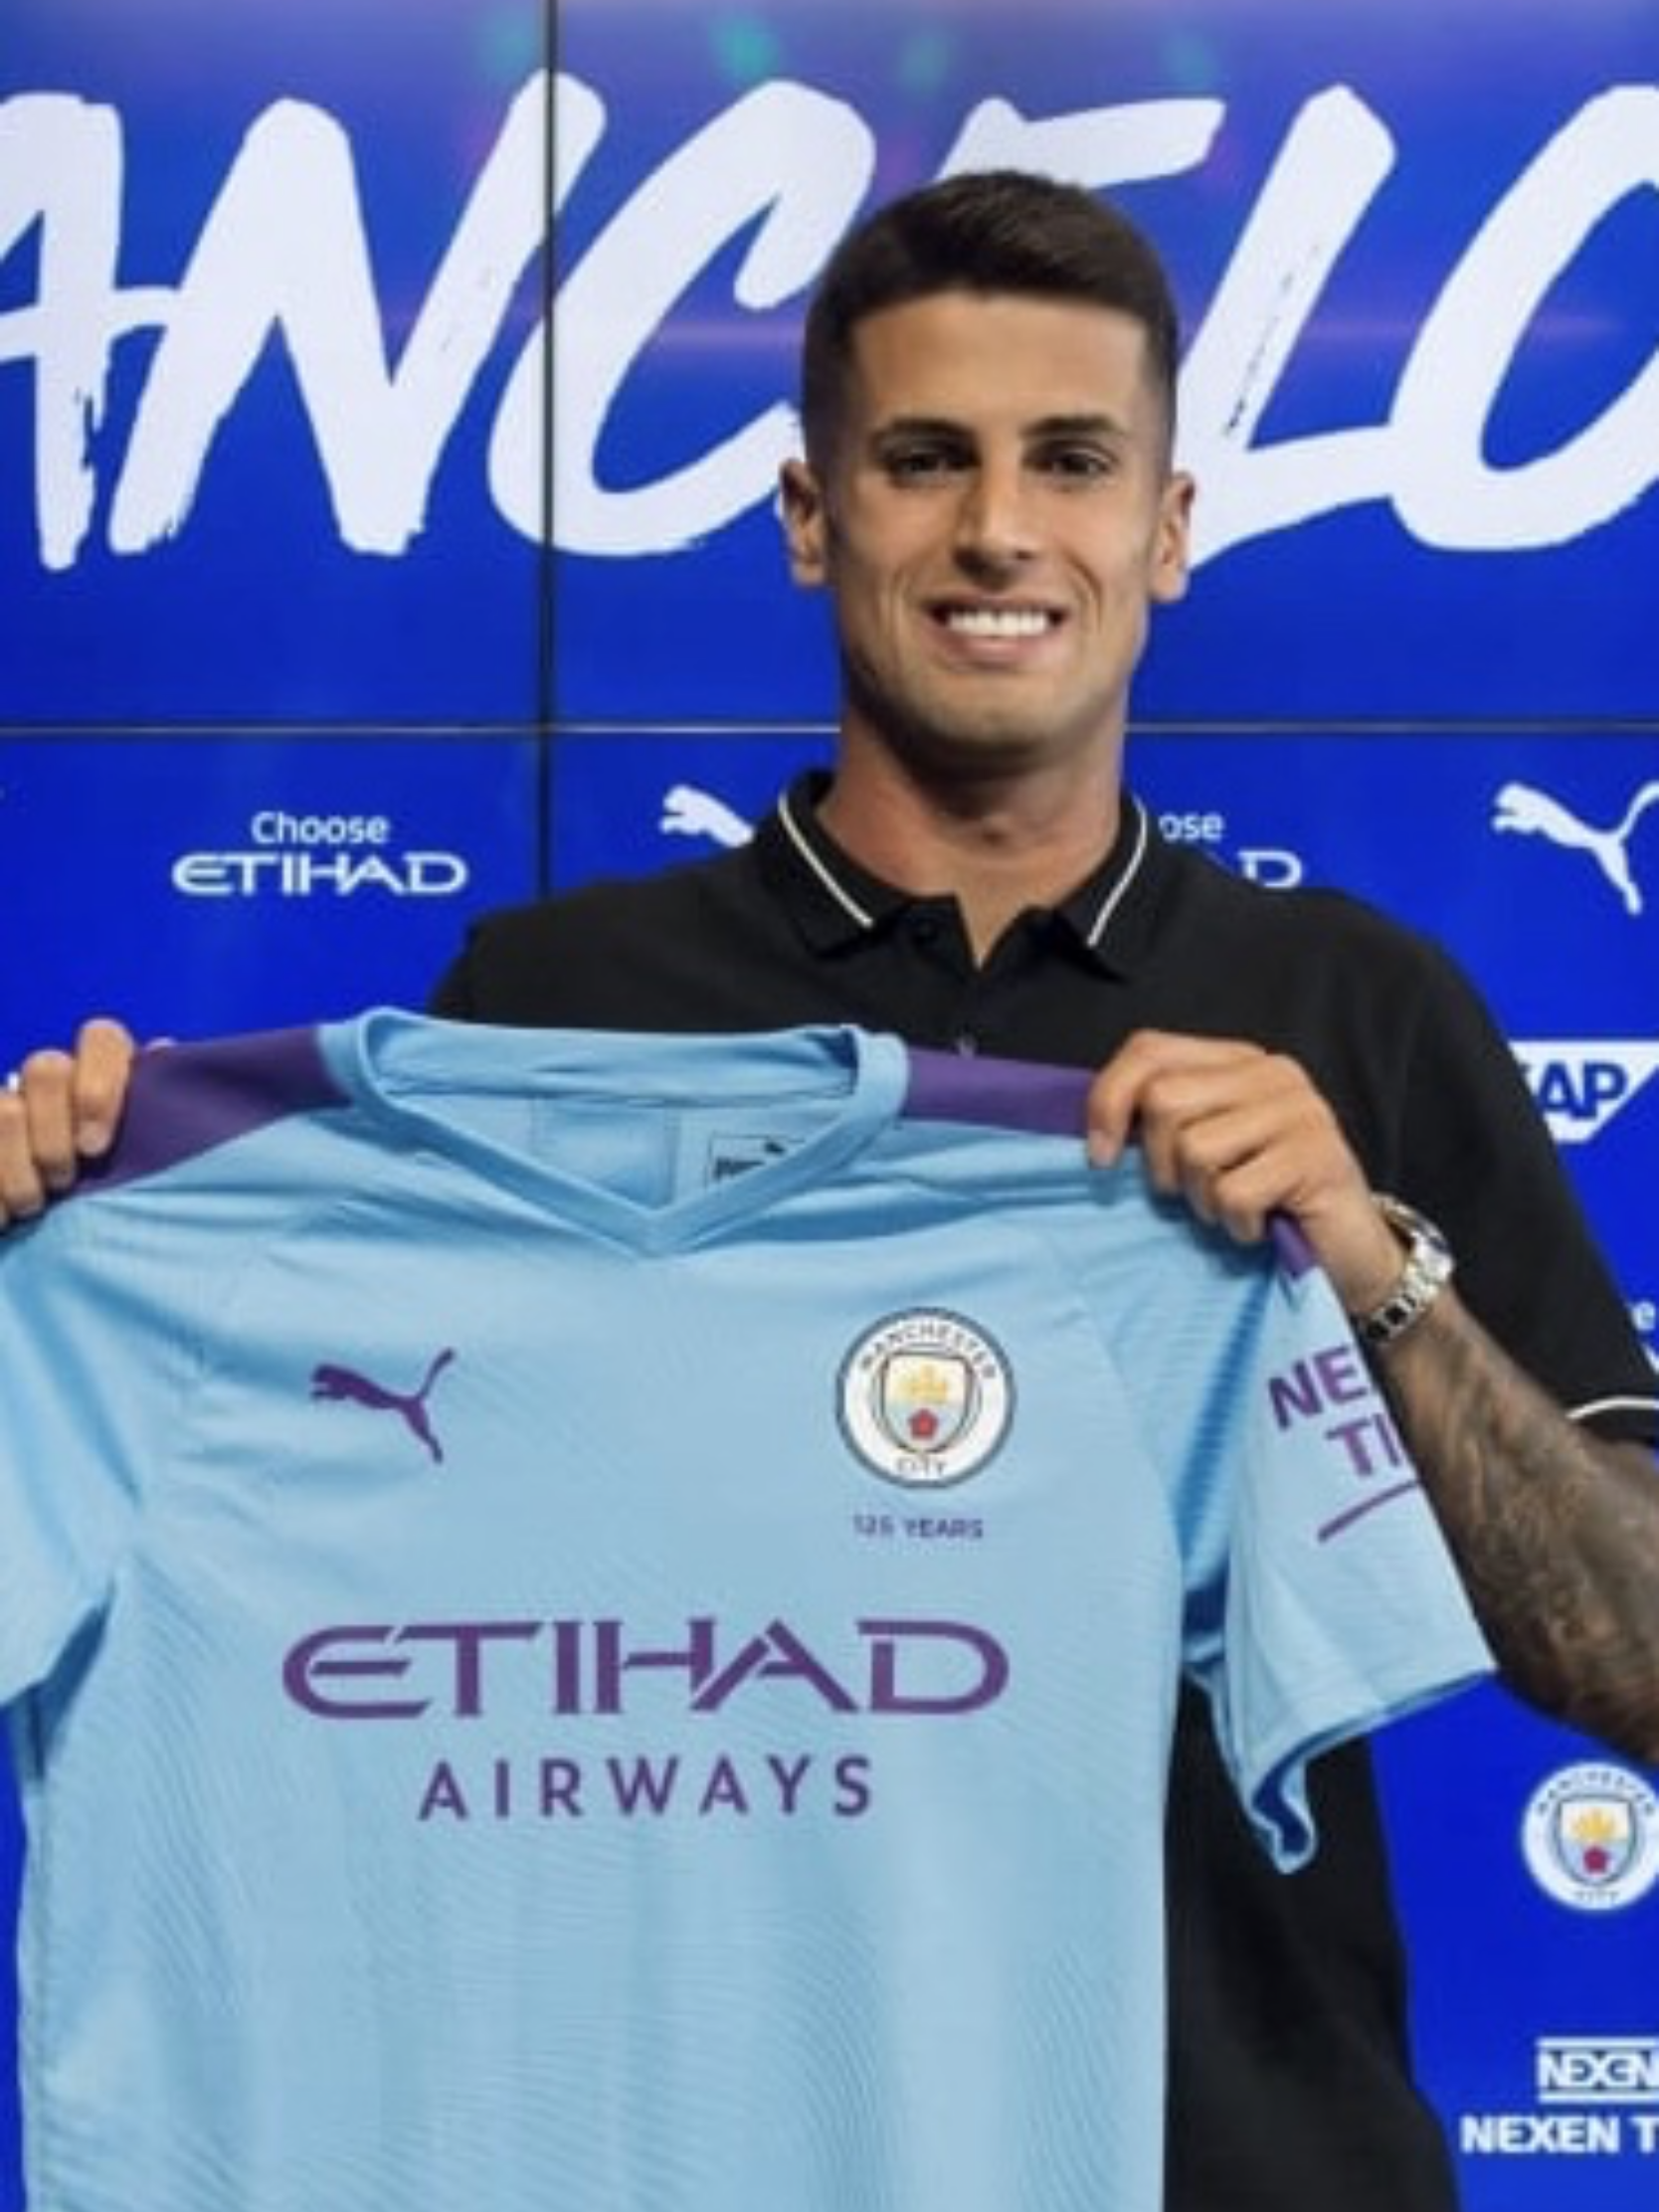 Joao Cancelo Manchester City Portugal Right Back Right Winger Left Back Manchester City Manchester Celebrities Humor